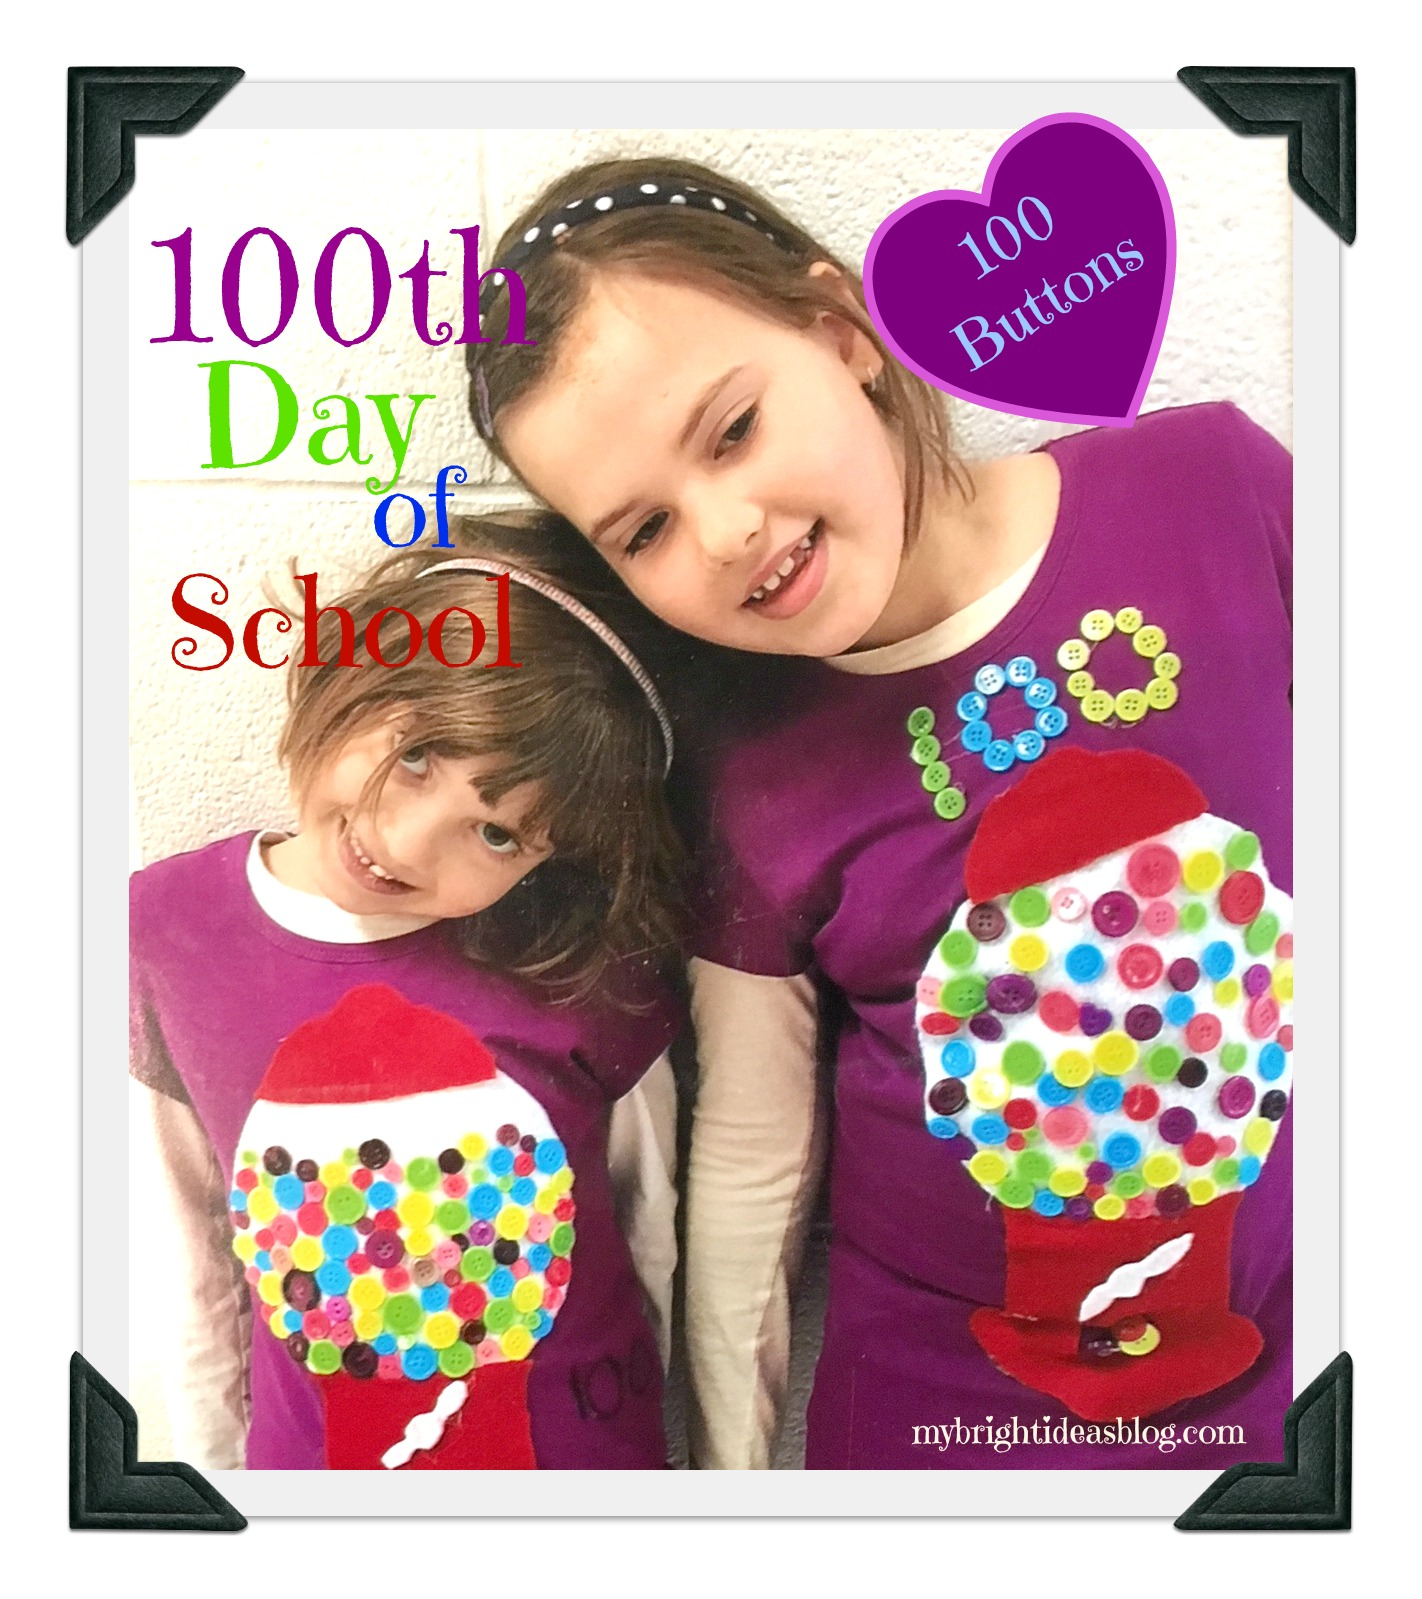 100th Day Of School Celebration Glue Buttons On A Shirt